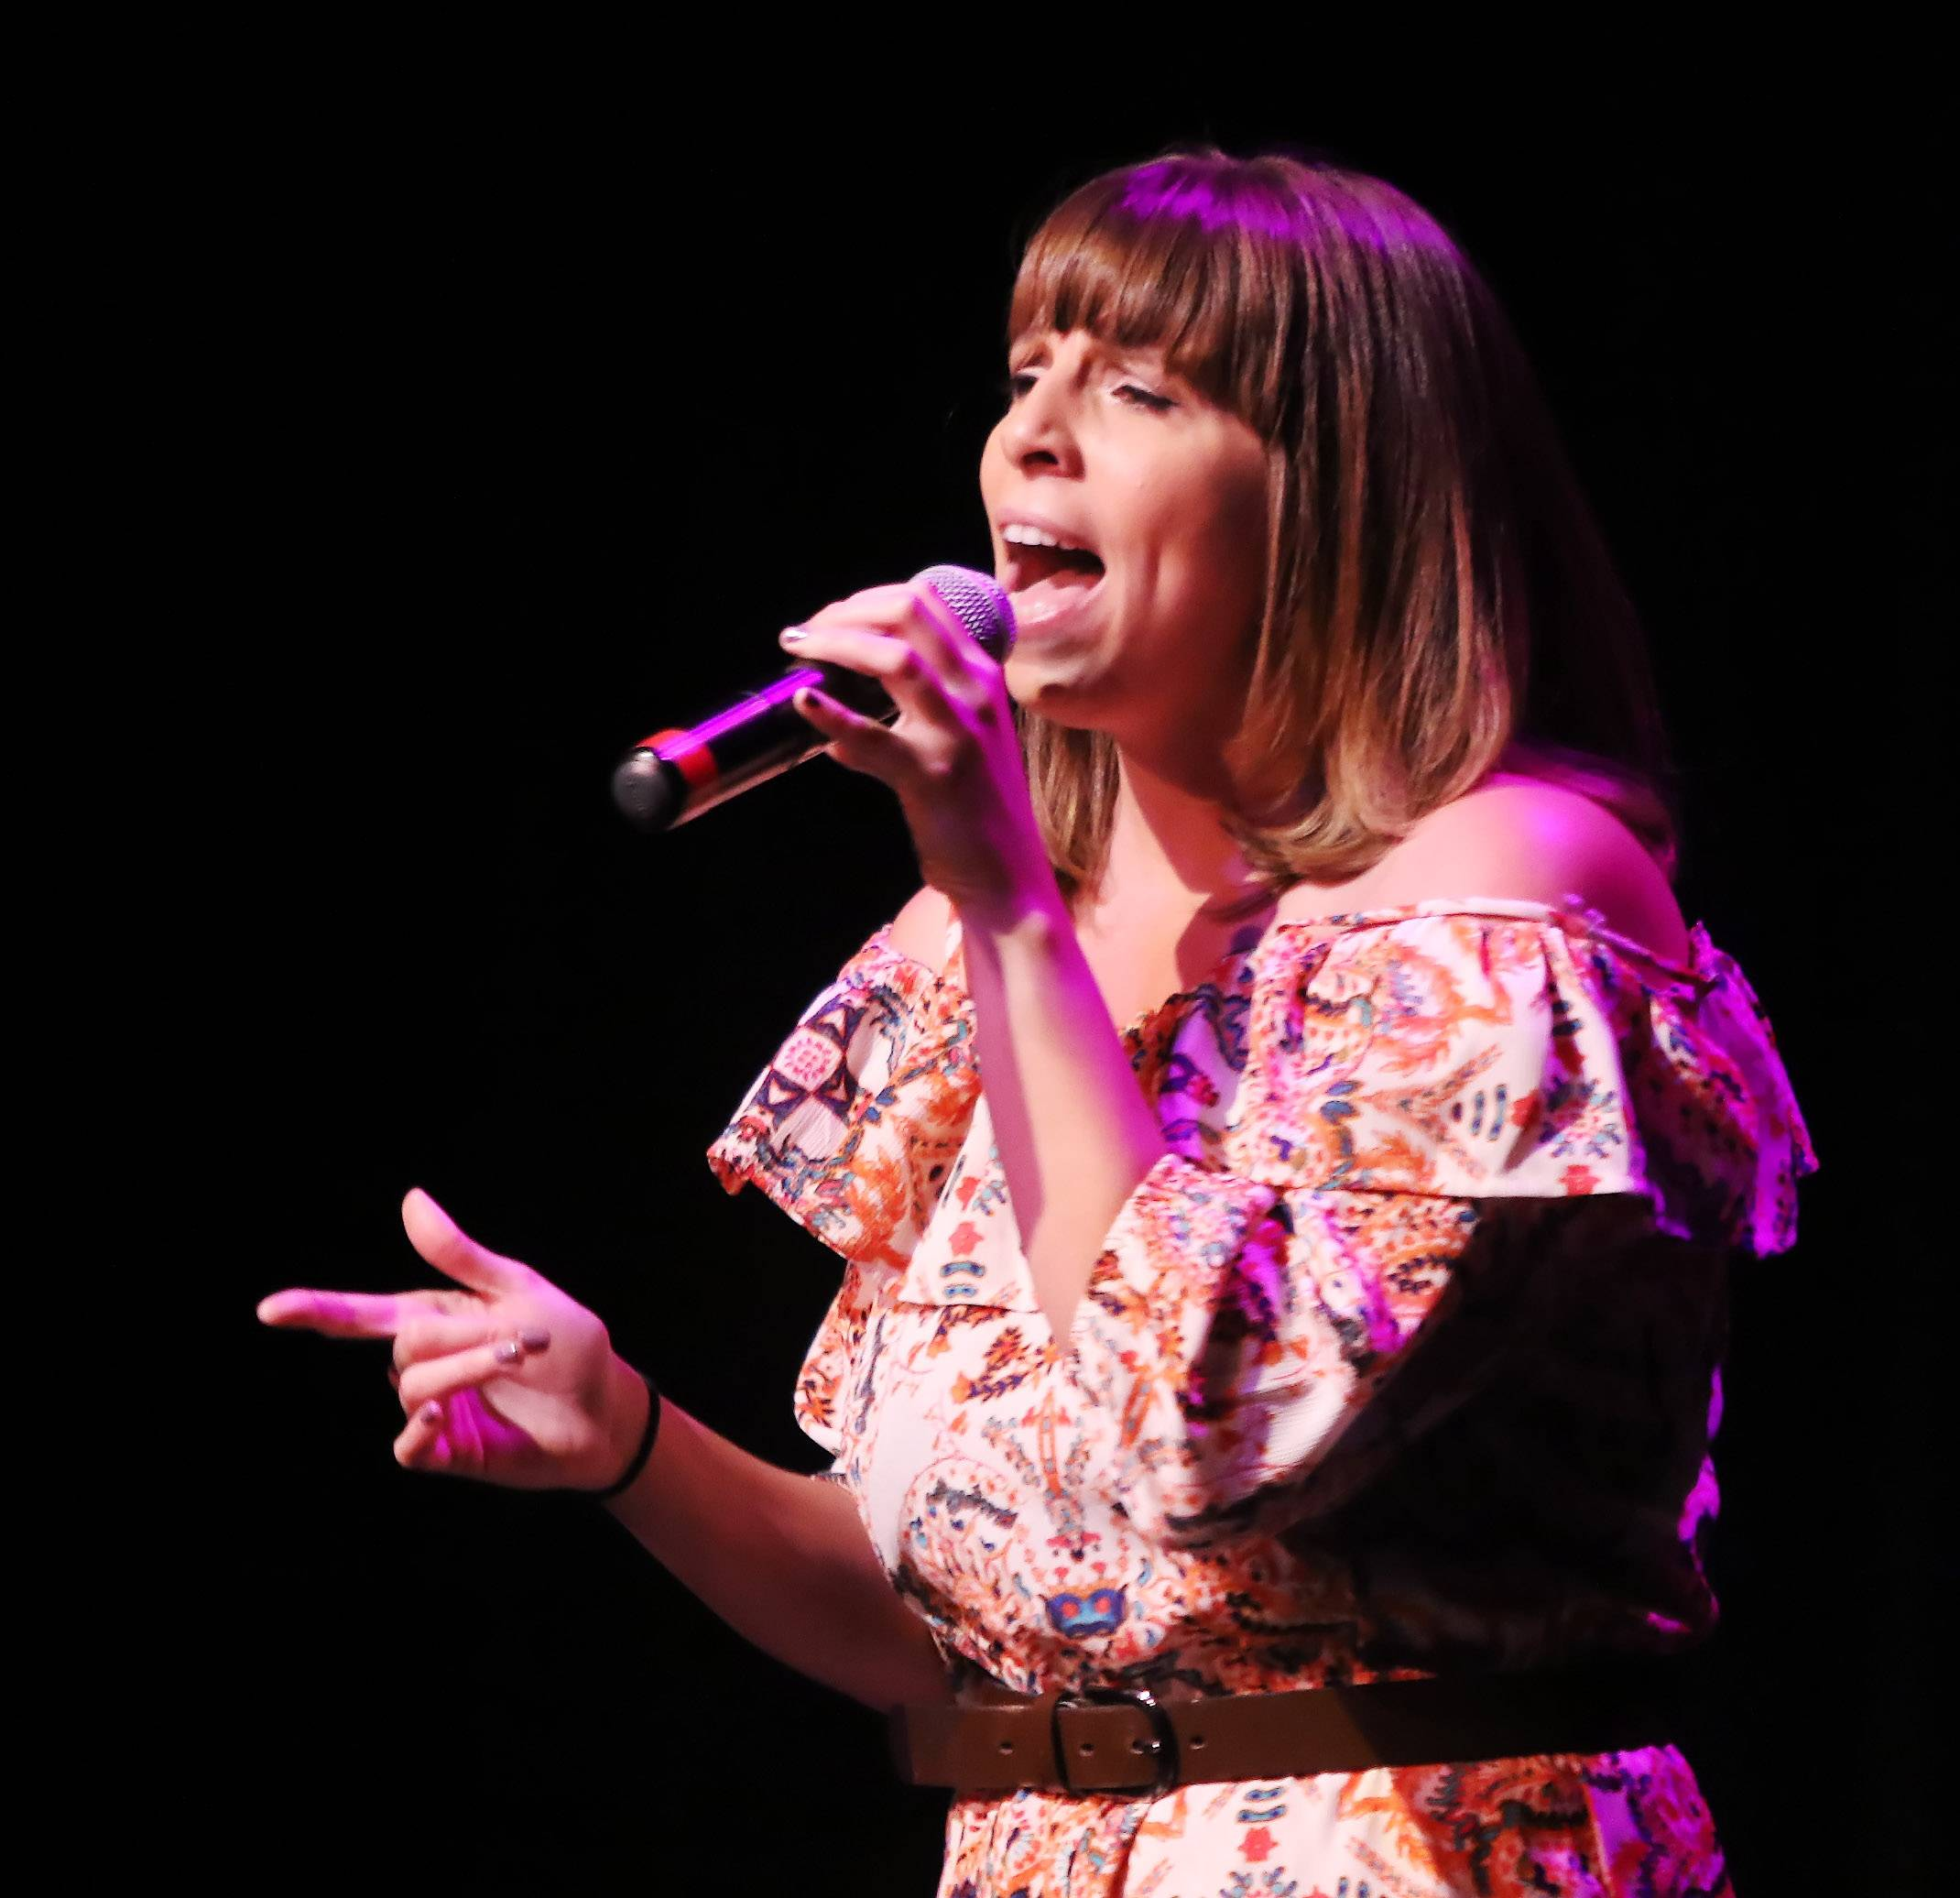 Cassandra Henwood of Elgin sings during the Suburban Chicago's Got Talent competition Sunday at Prairie Center for the Arts in Schaumburg. The winners will be announced at the Taste of Arlington Heights on Saturday, Aug. 5.